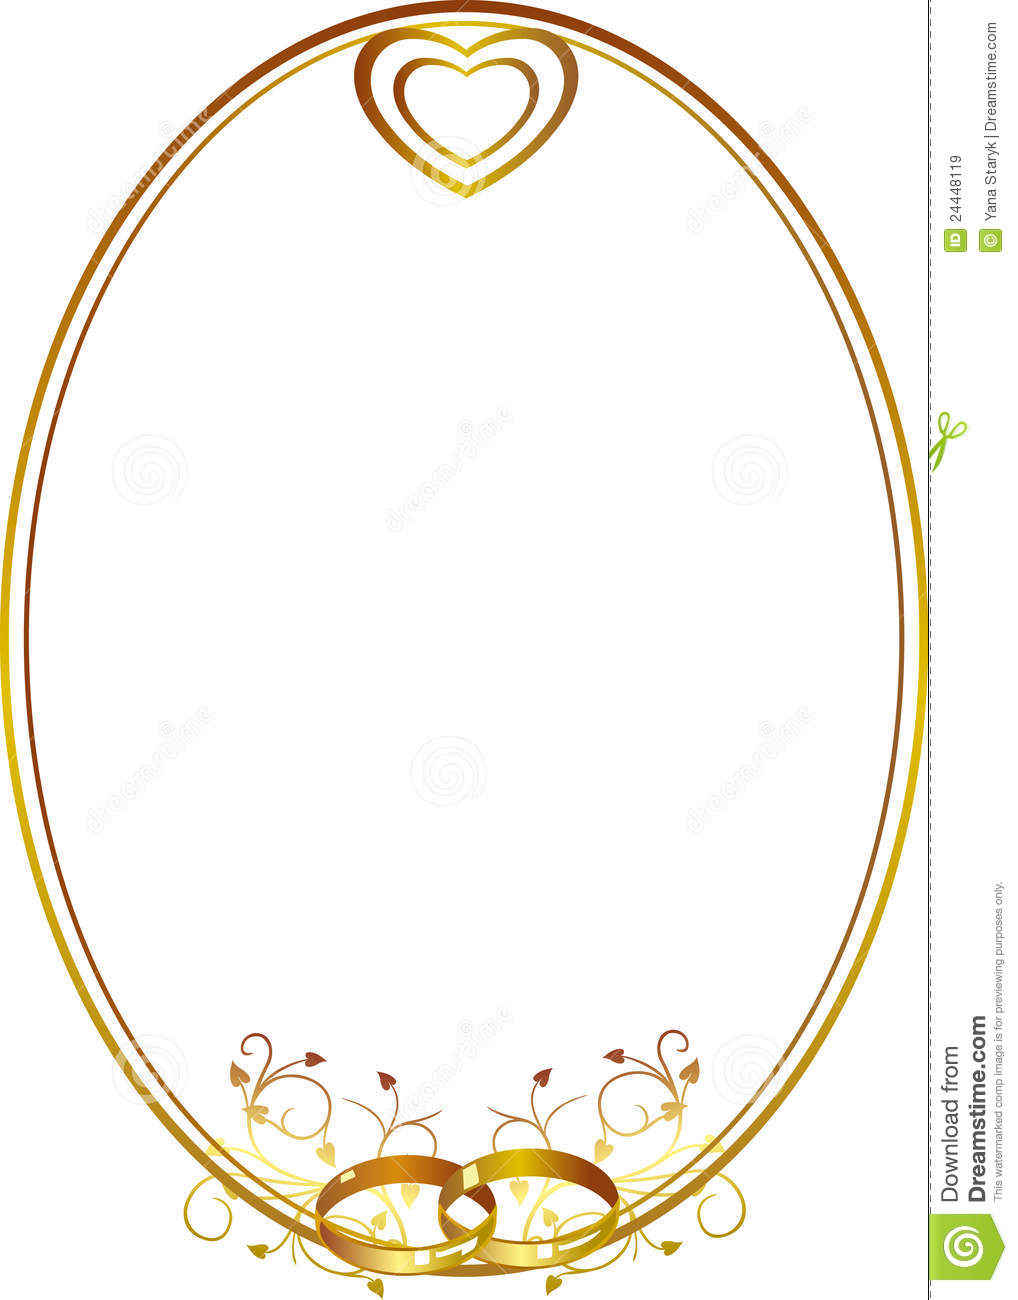 More similar stock images of ` Wedding frame with heart `